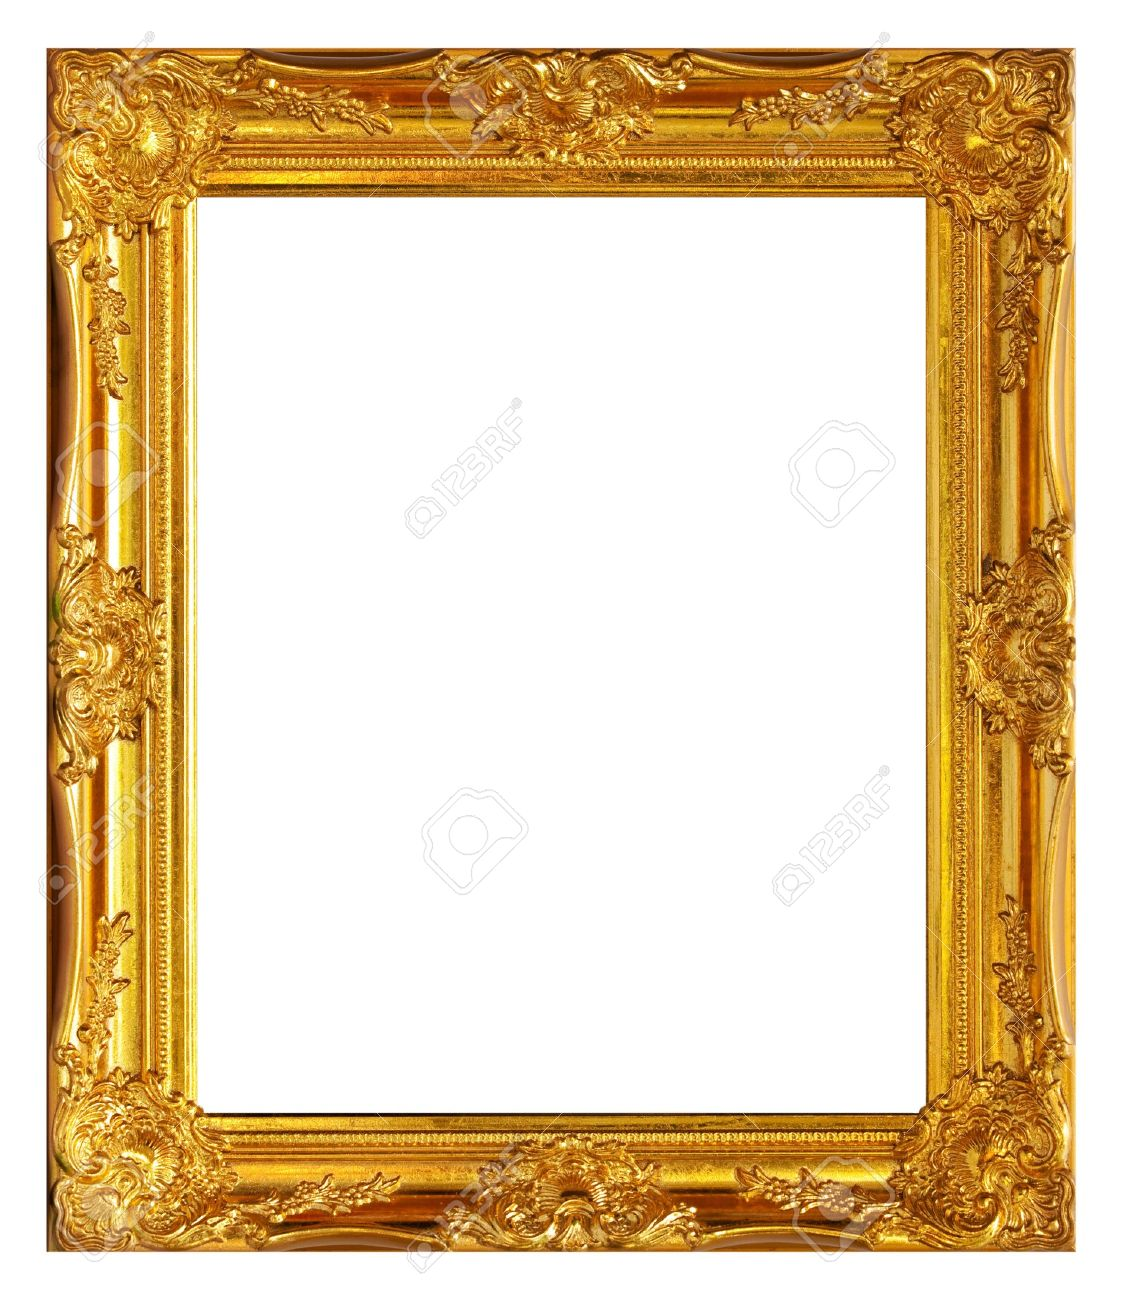 Gold frame on white background Stock Photo - 9401356